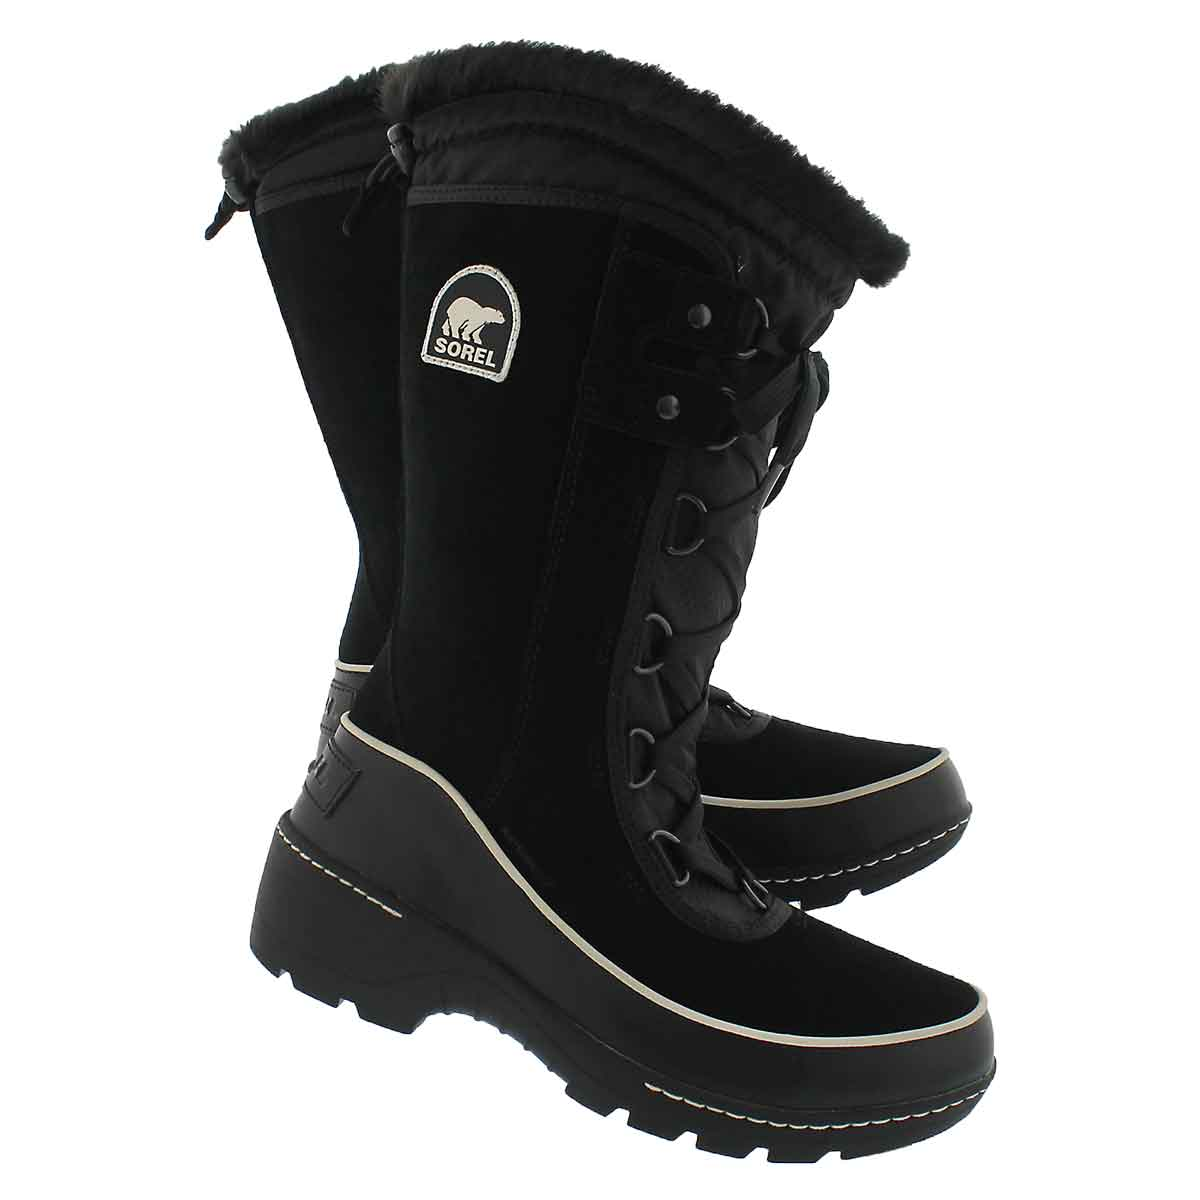 Lds Tivoli III High black/gry wtpf boot